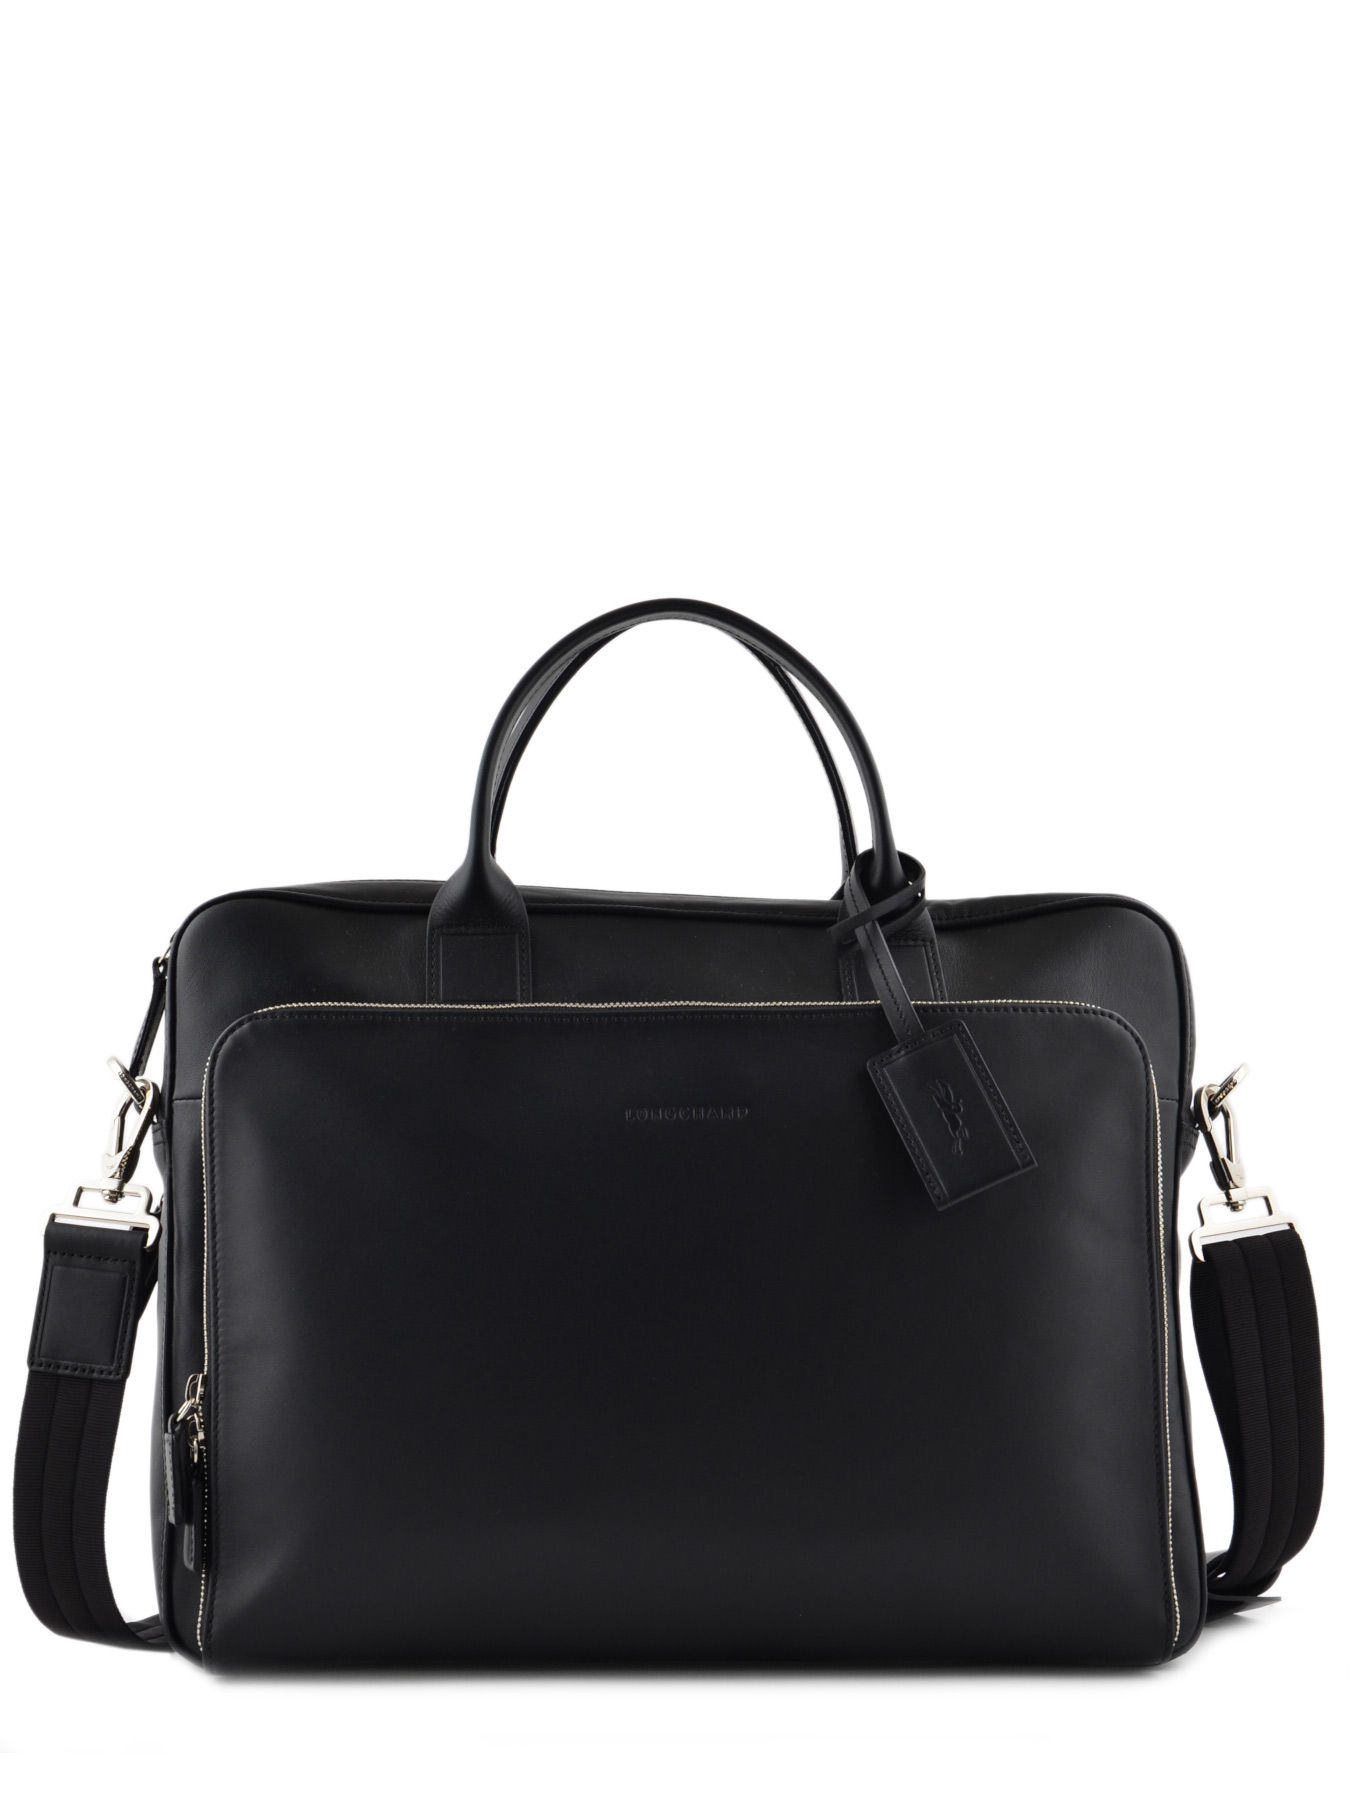 Shopping > sac porte document femme cuir, Up to 69% OFF